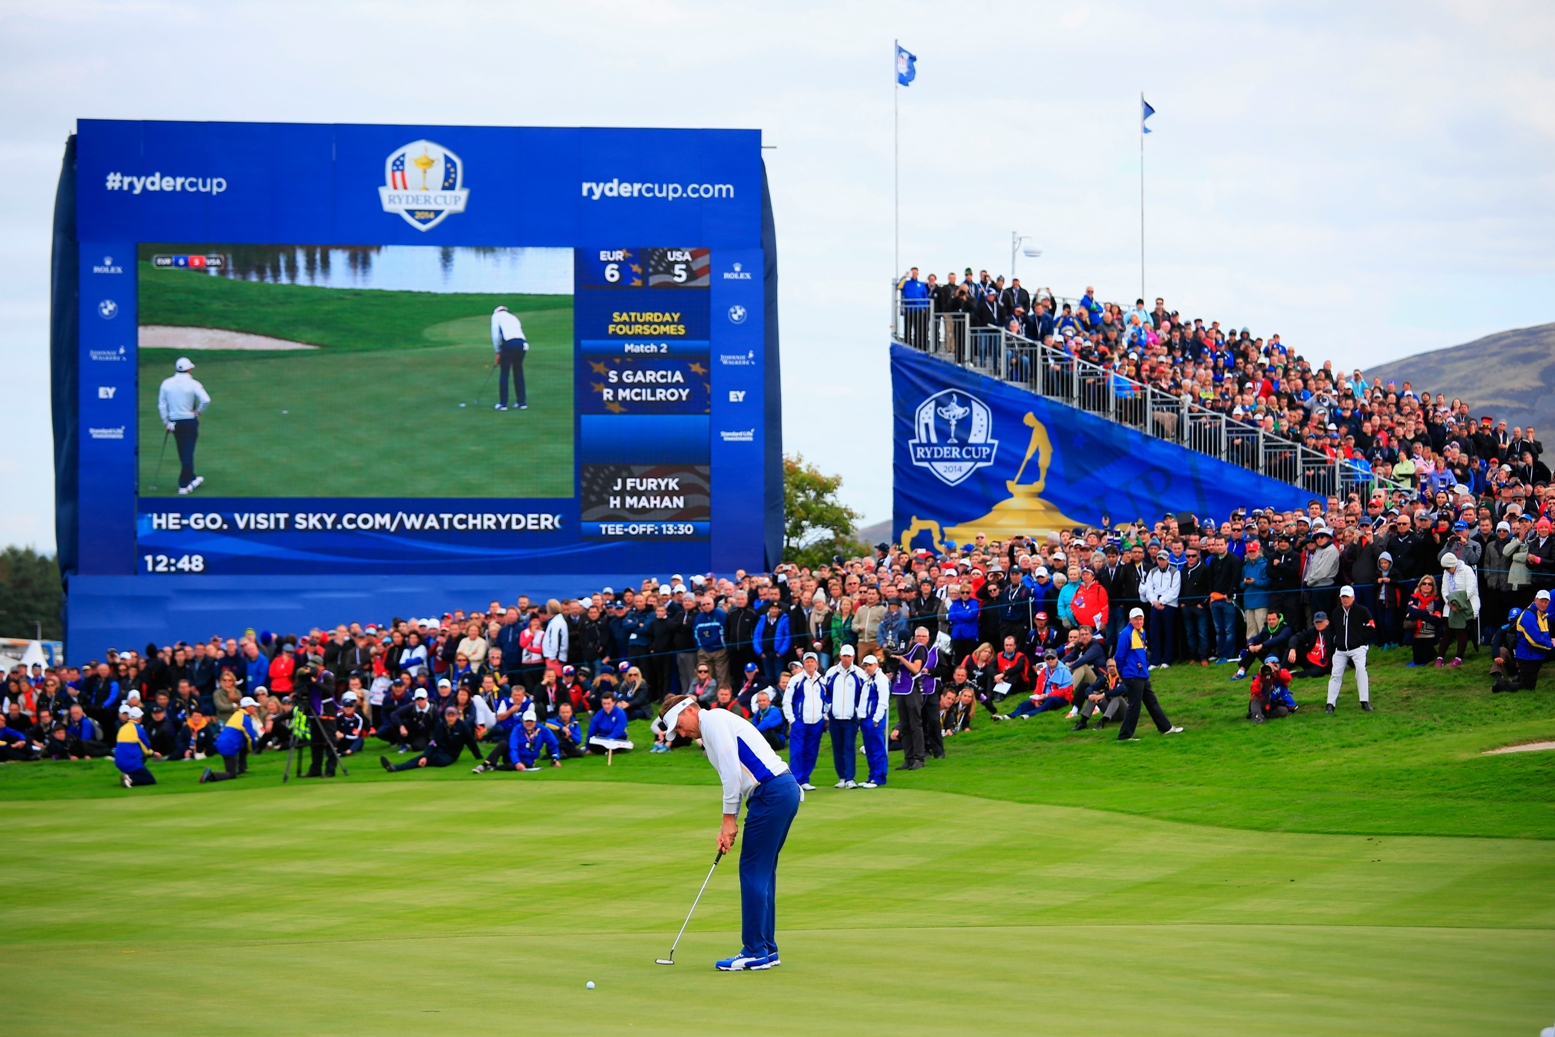 Europe defends Ryder Cup title in style in Gleneagles